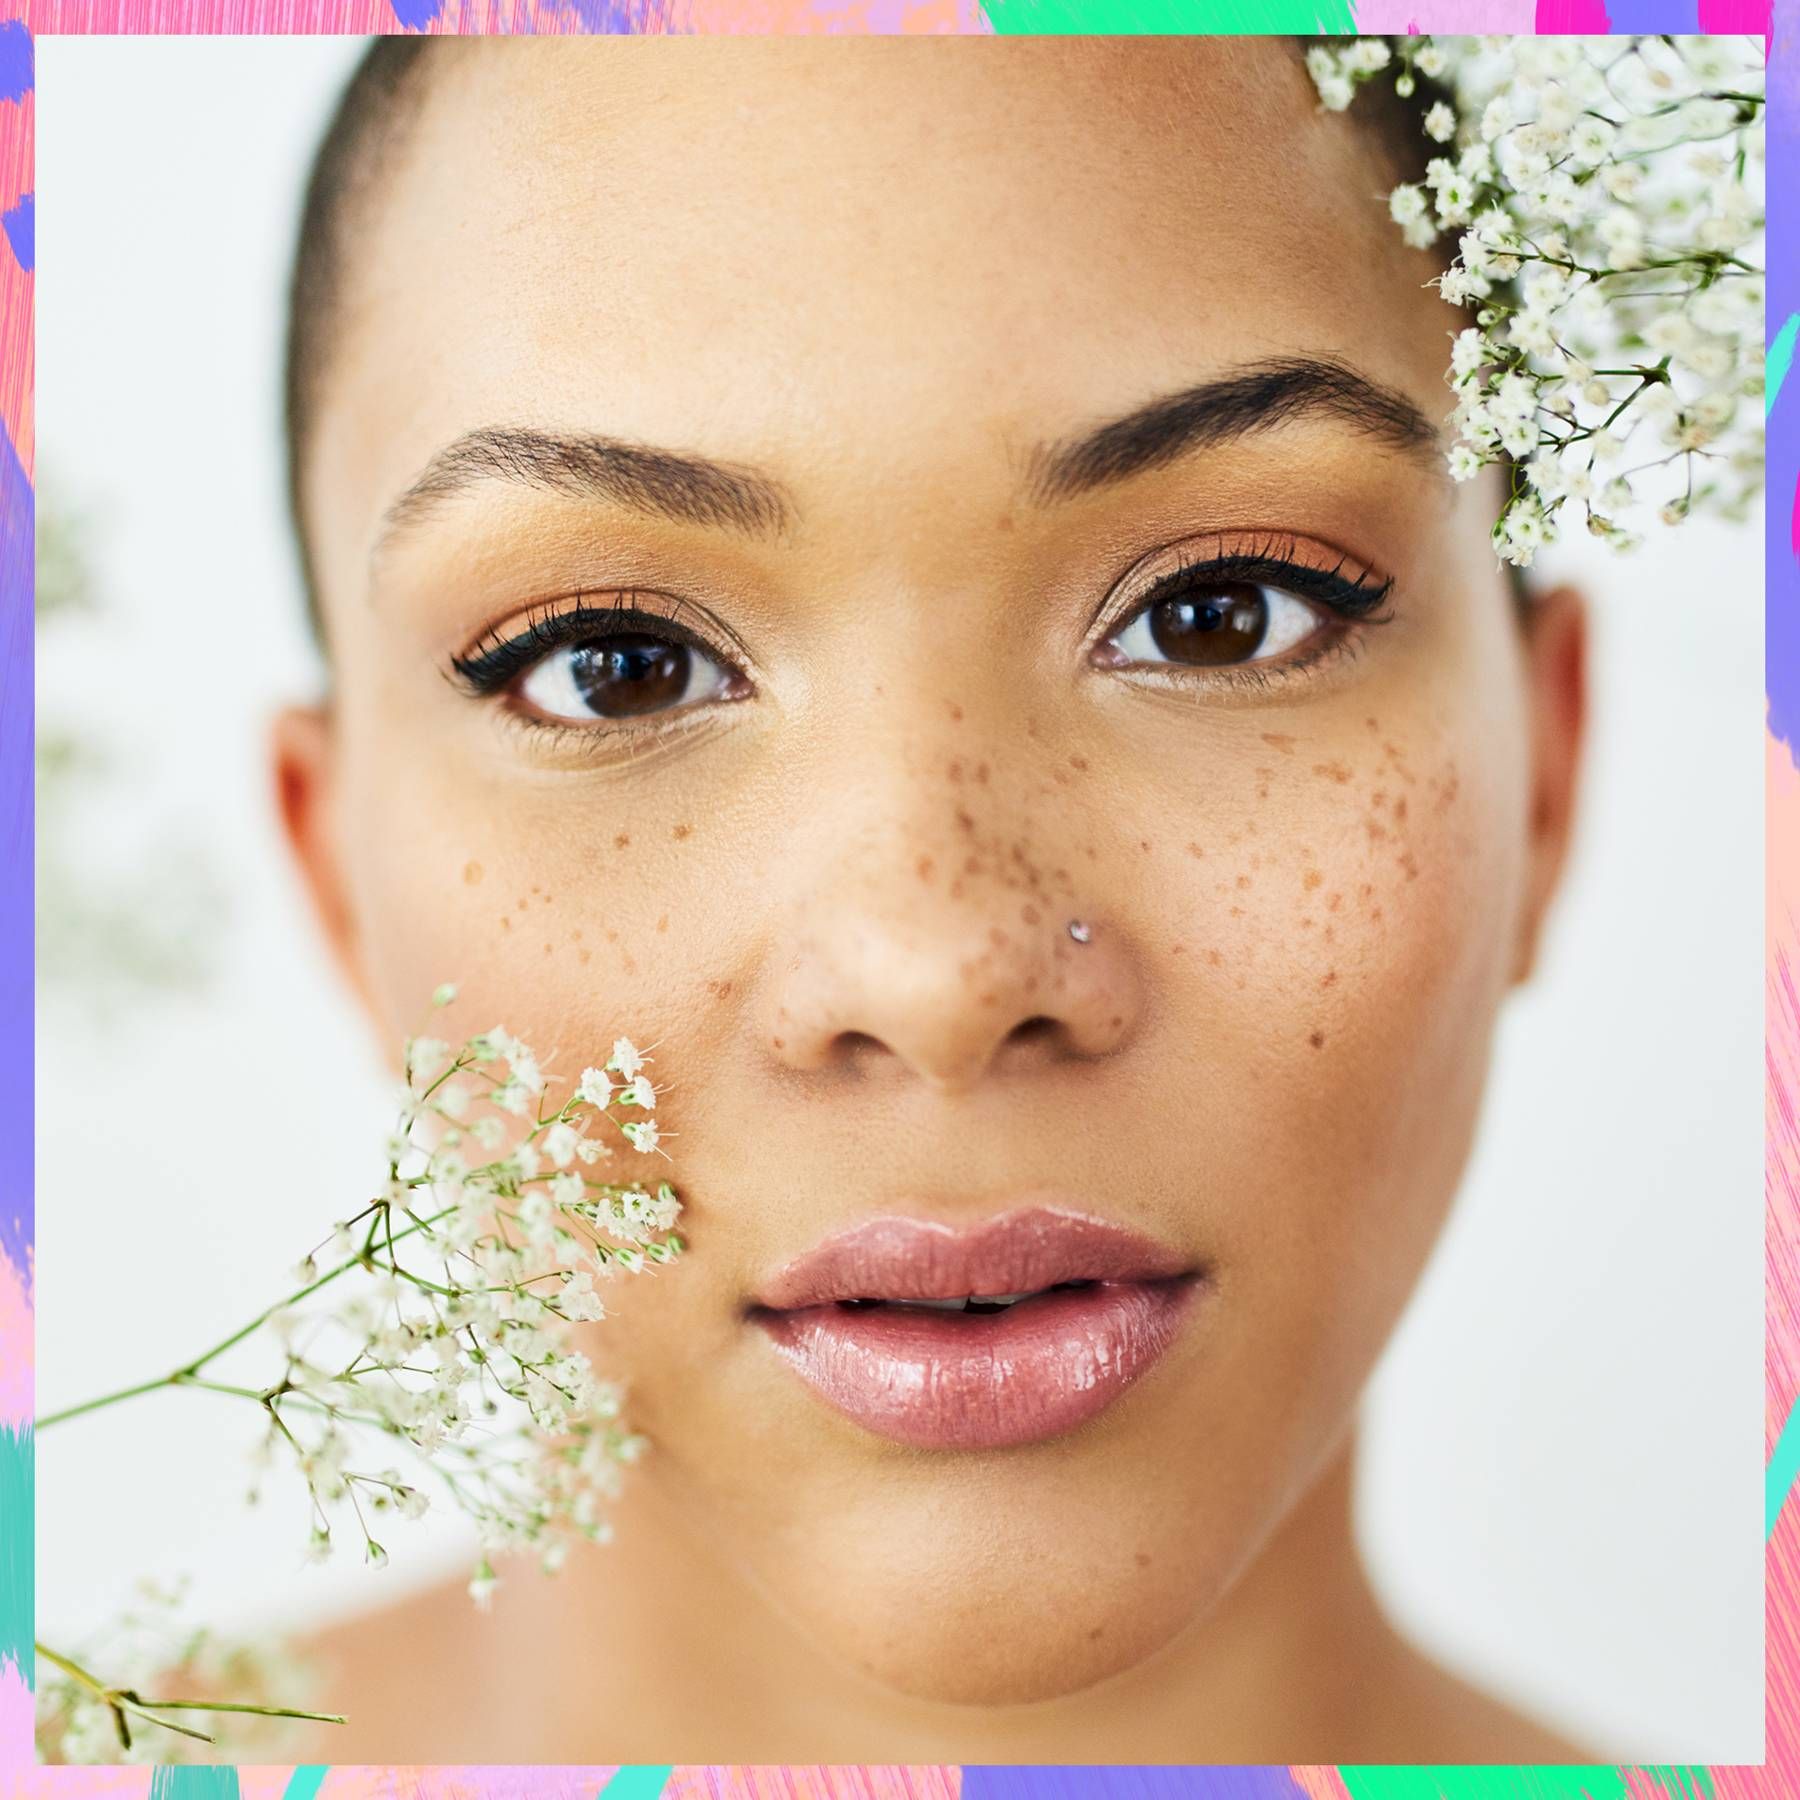 A leading dermatologist reveals why looking after your skin barrier is crucial for a healthy complexion